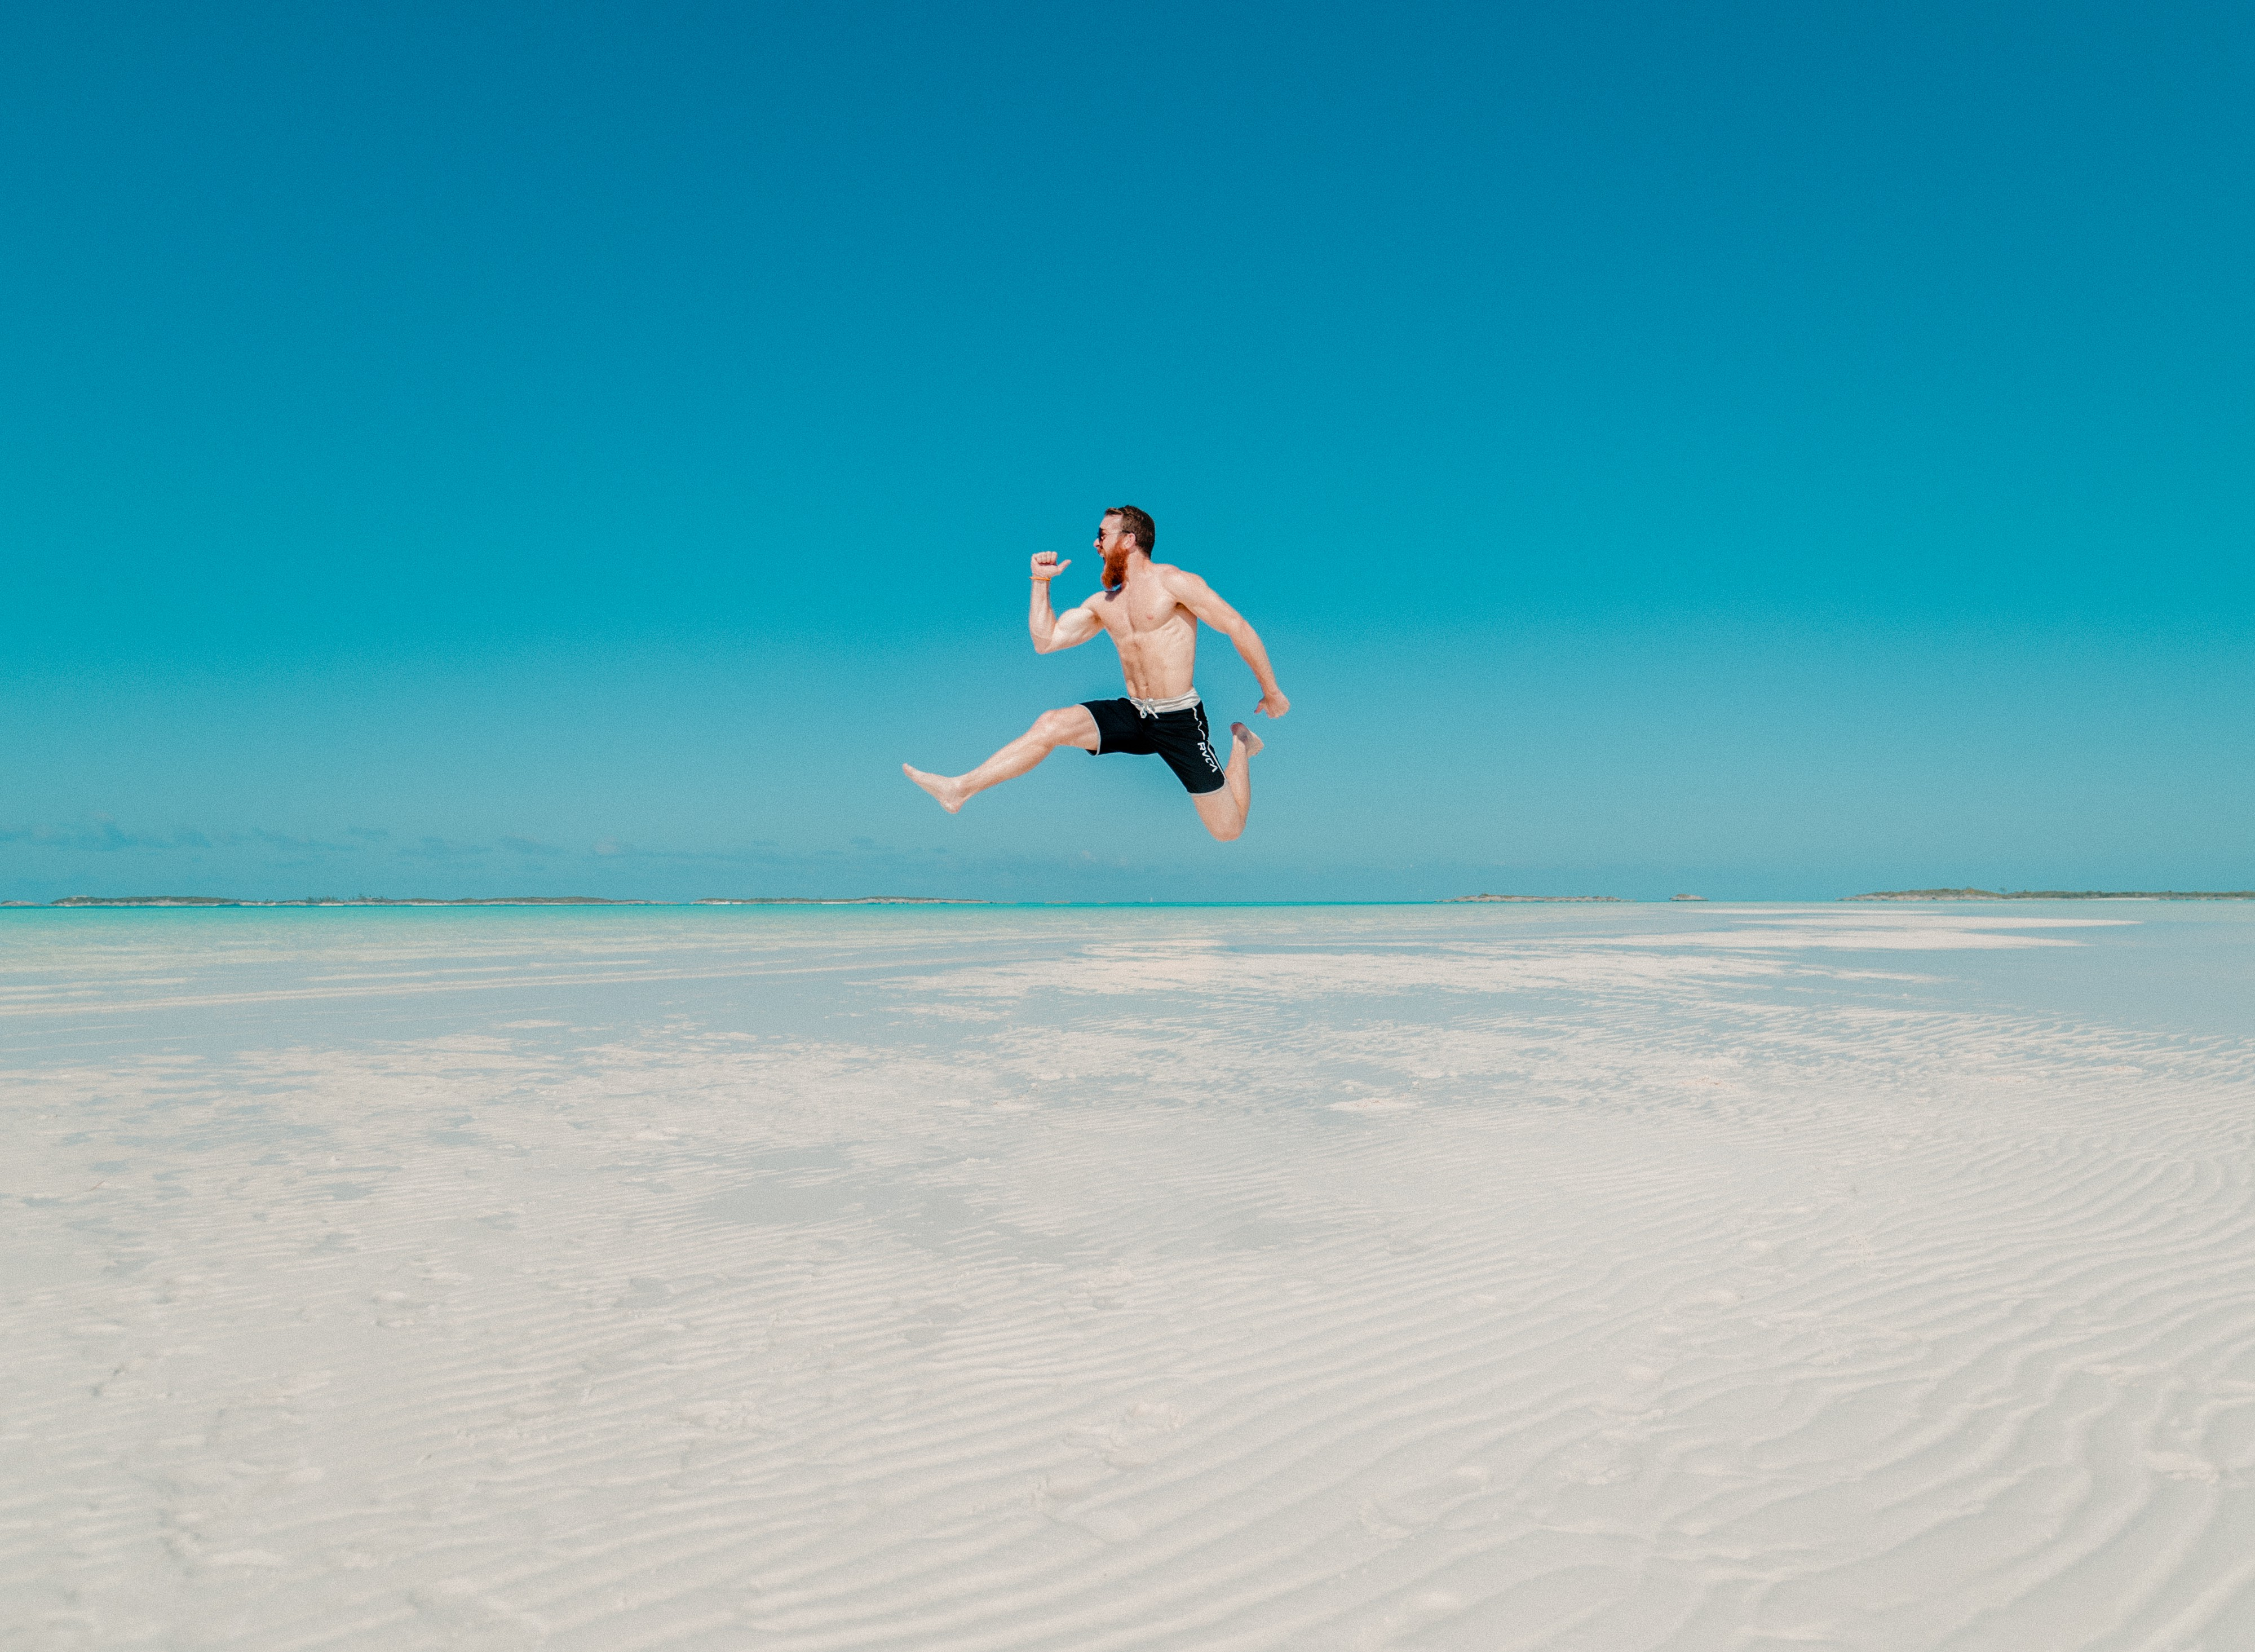 Man leaping for joy. For article by Darryl Brooks on Medium.